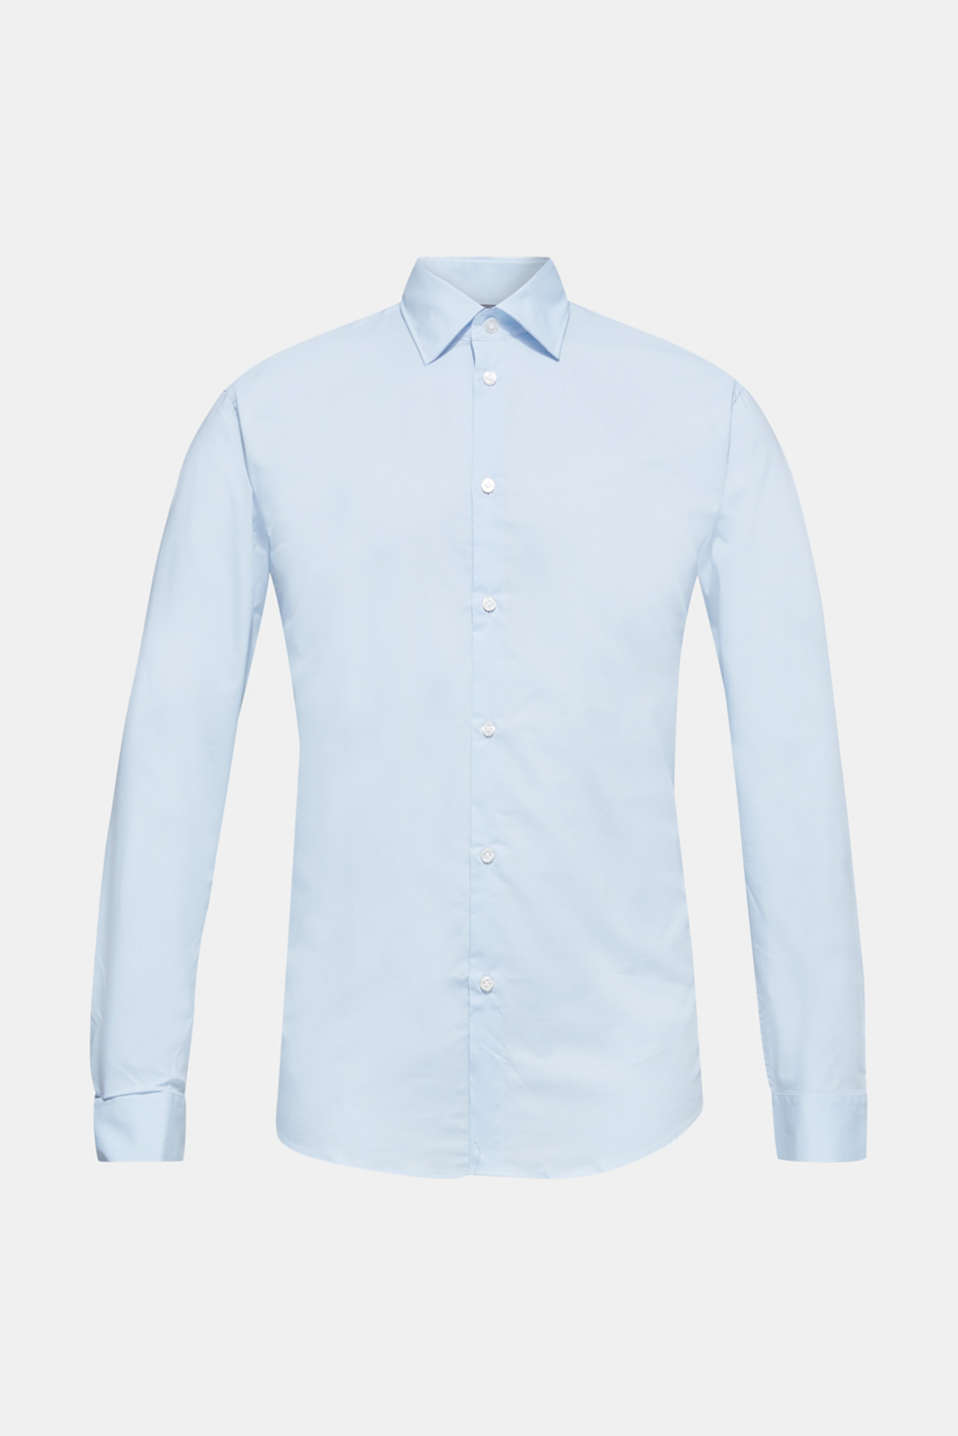 Shirt with mechanical stretch, 100% cotton, LIGHT BLUE, detail image number 7